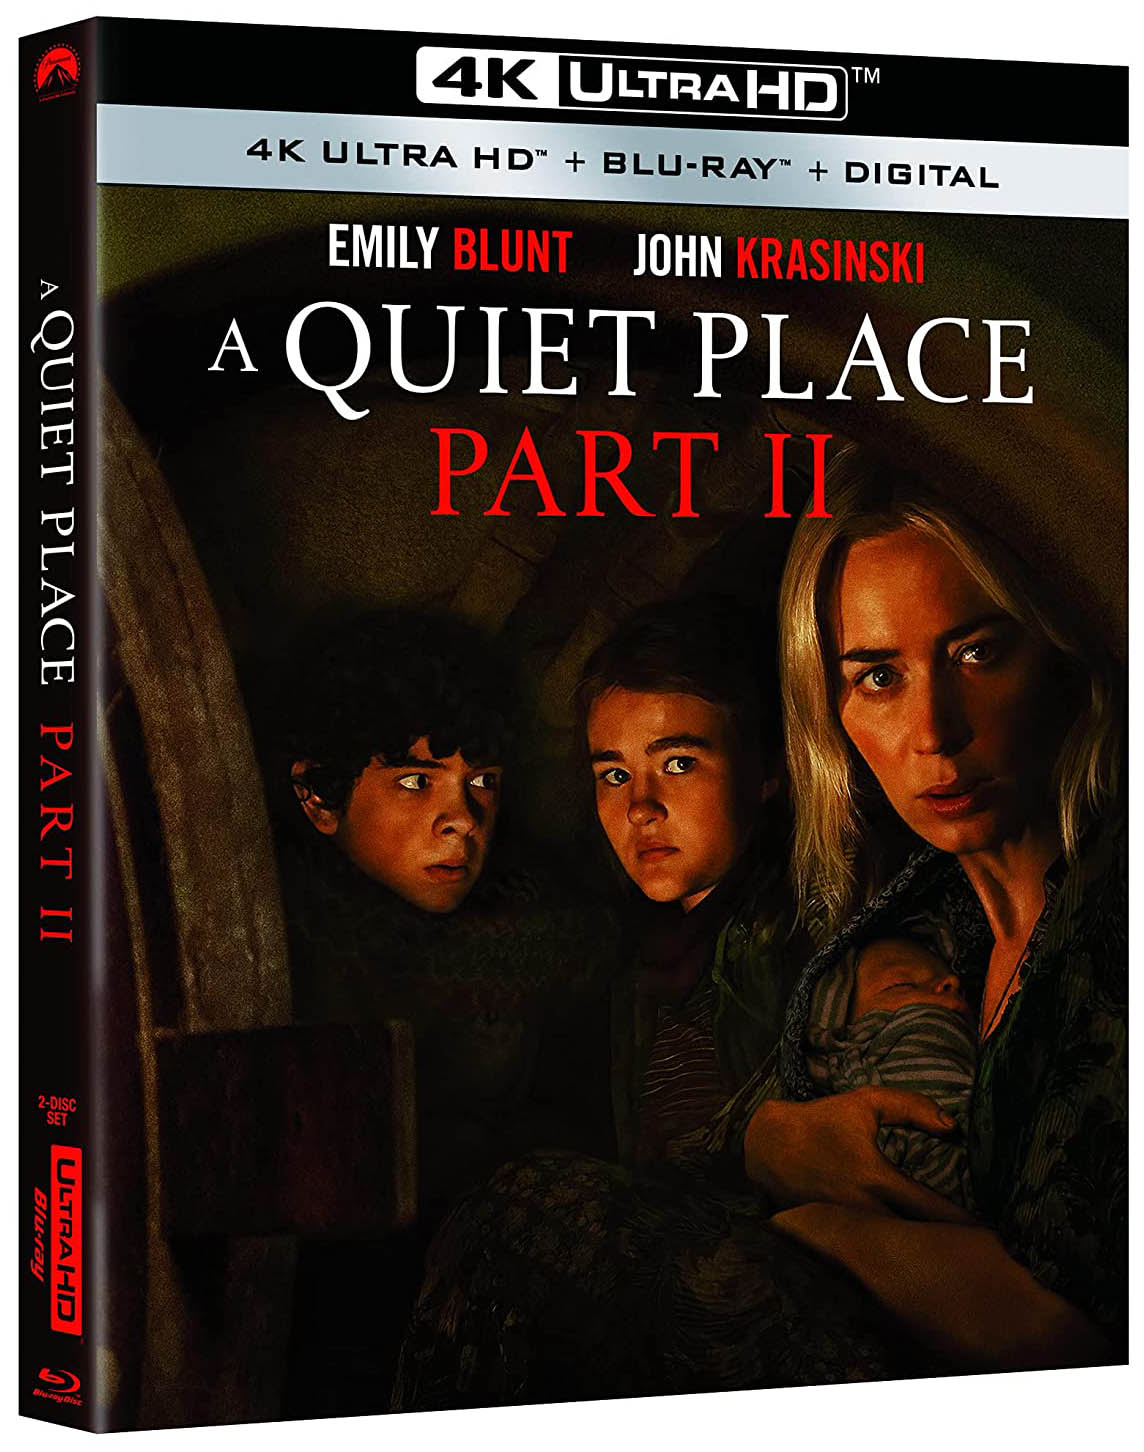 A Quiet Place Part II 4k Blu-ray